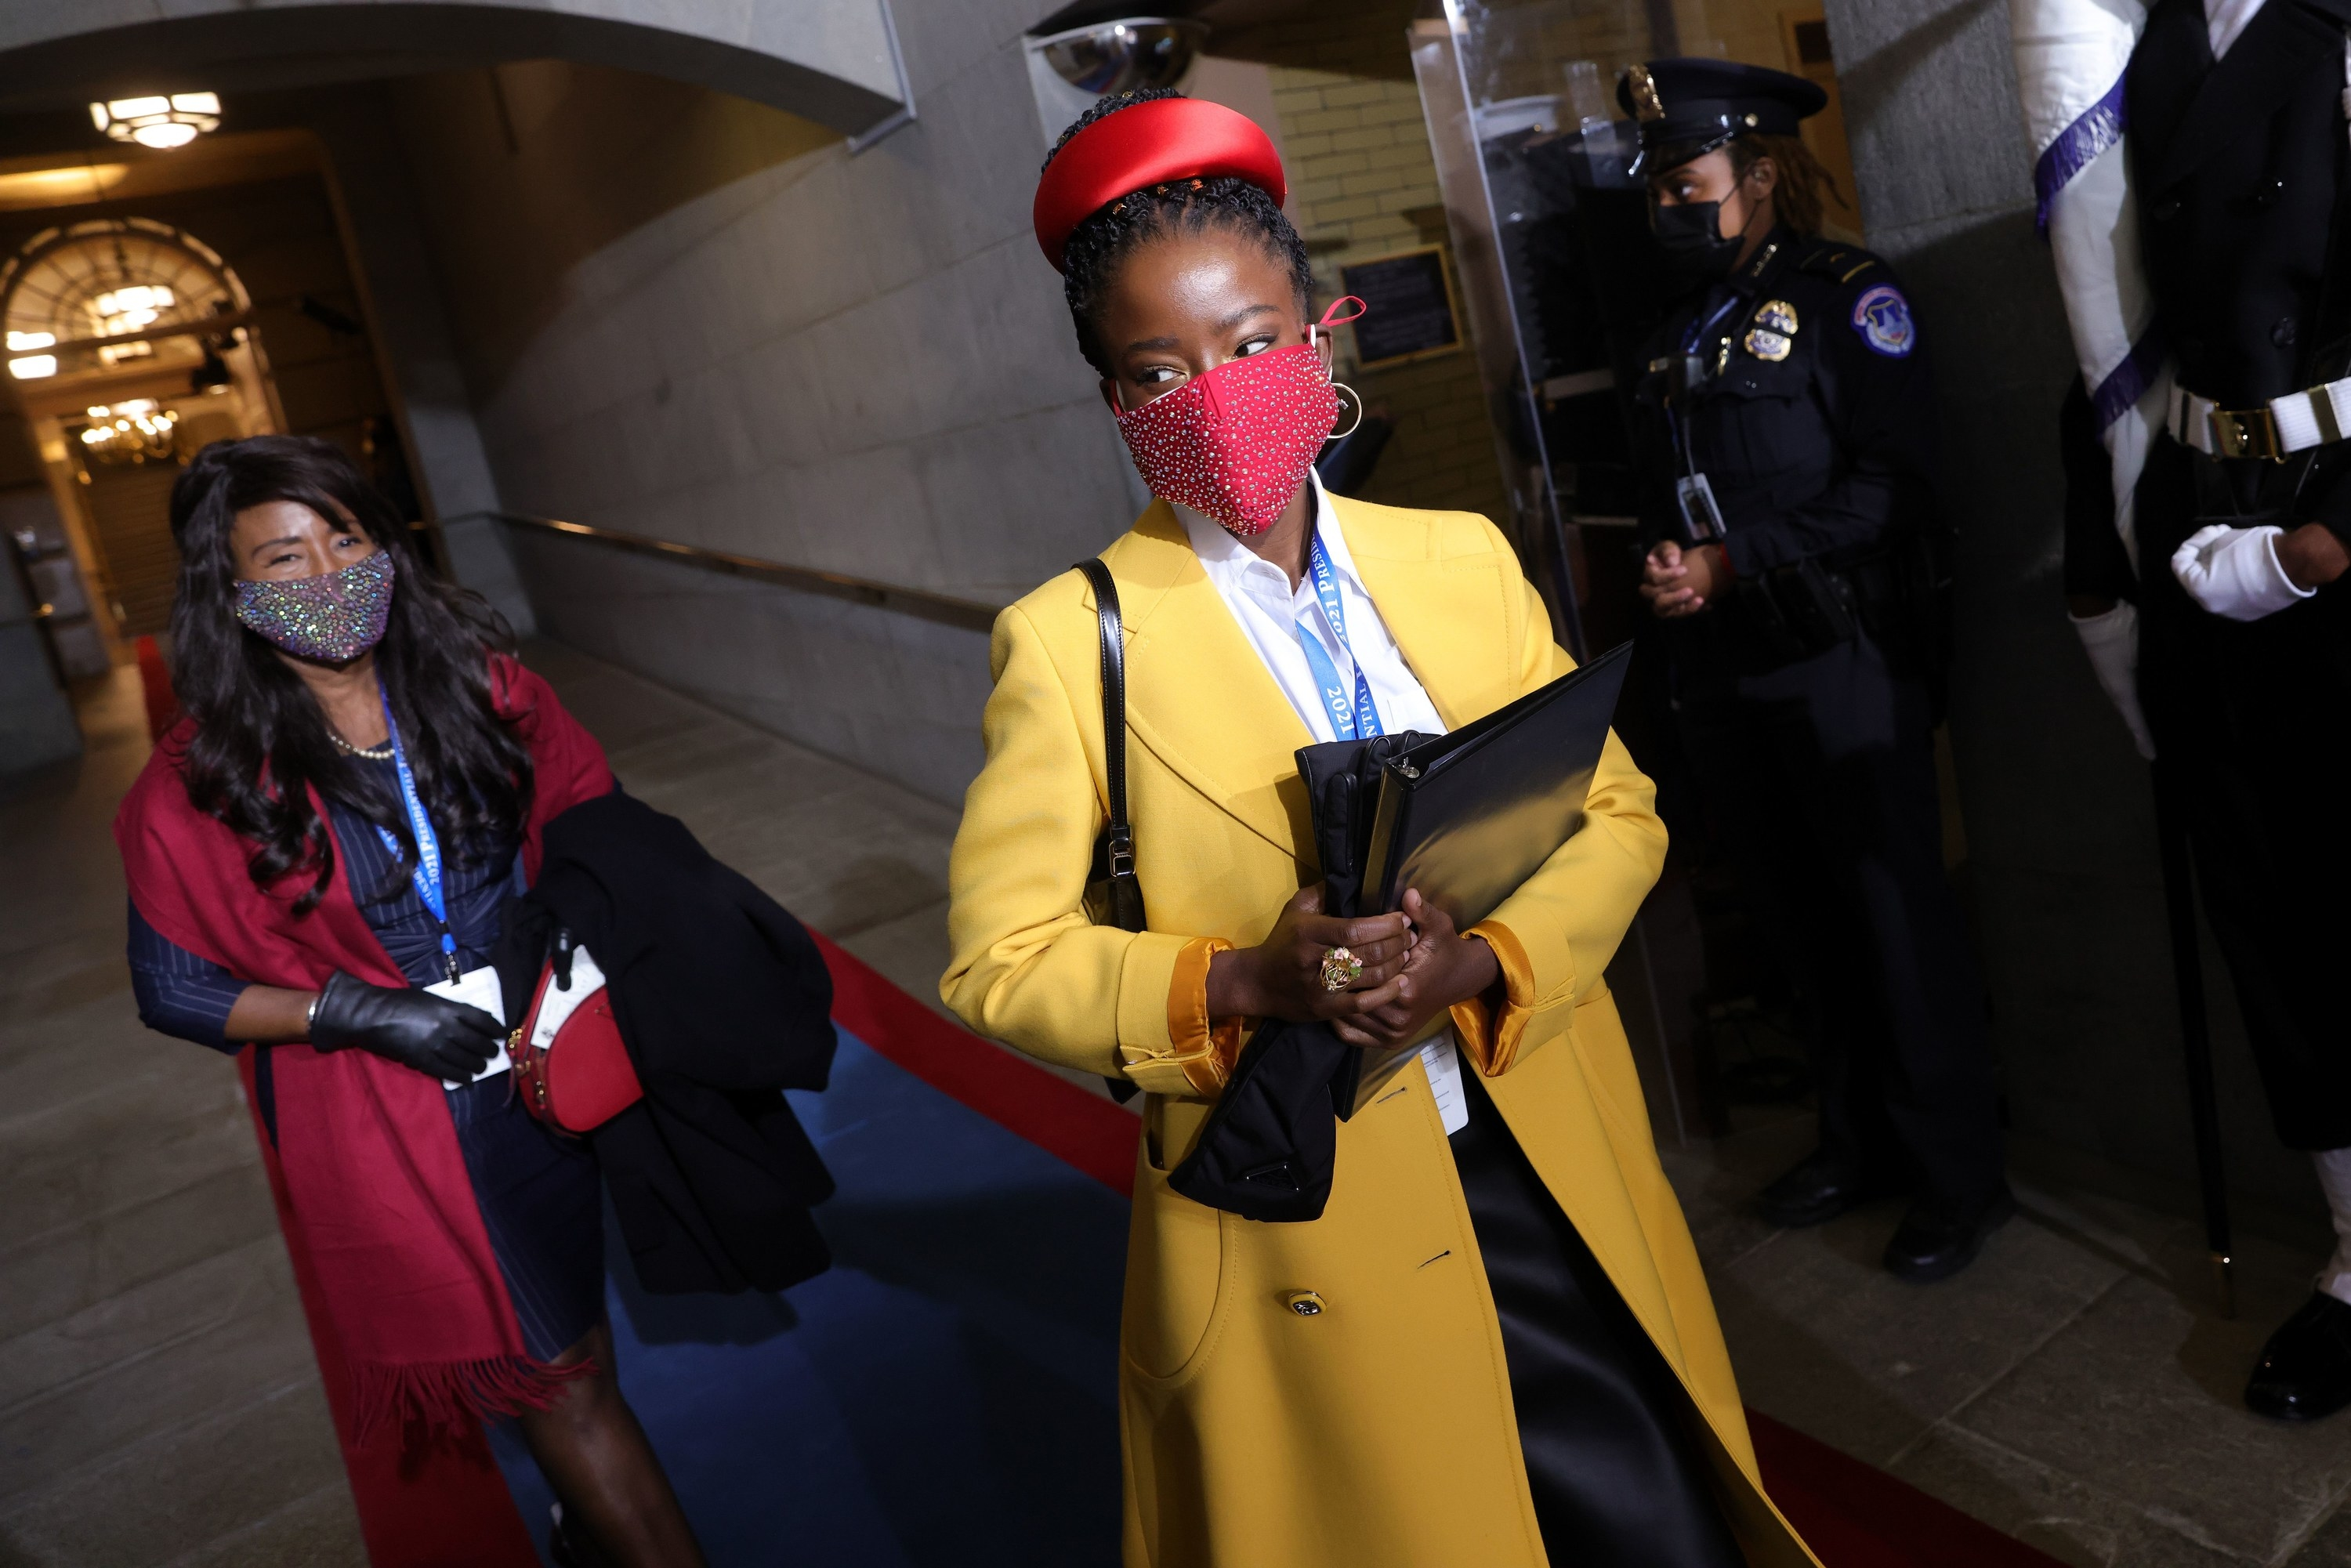 National youth poet laureate Amanda Gorman in a yellow coat and red studded face mask arriving at the inauguration, with another woman behind her in a red coat and floral face mask.